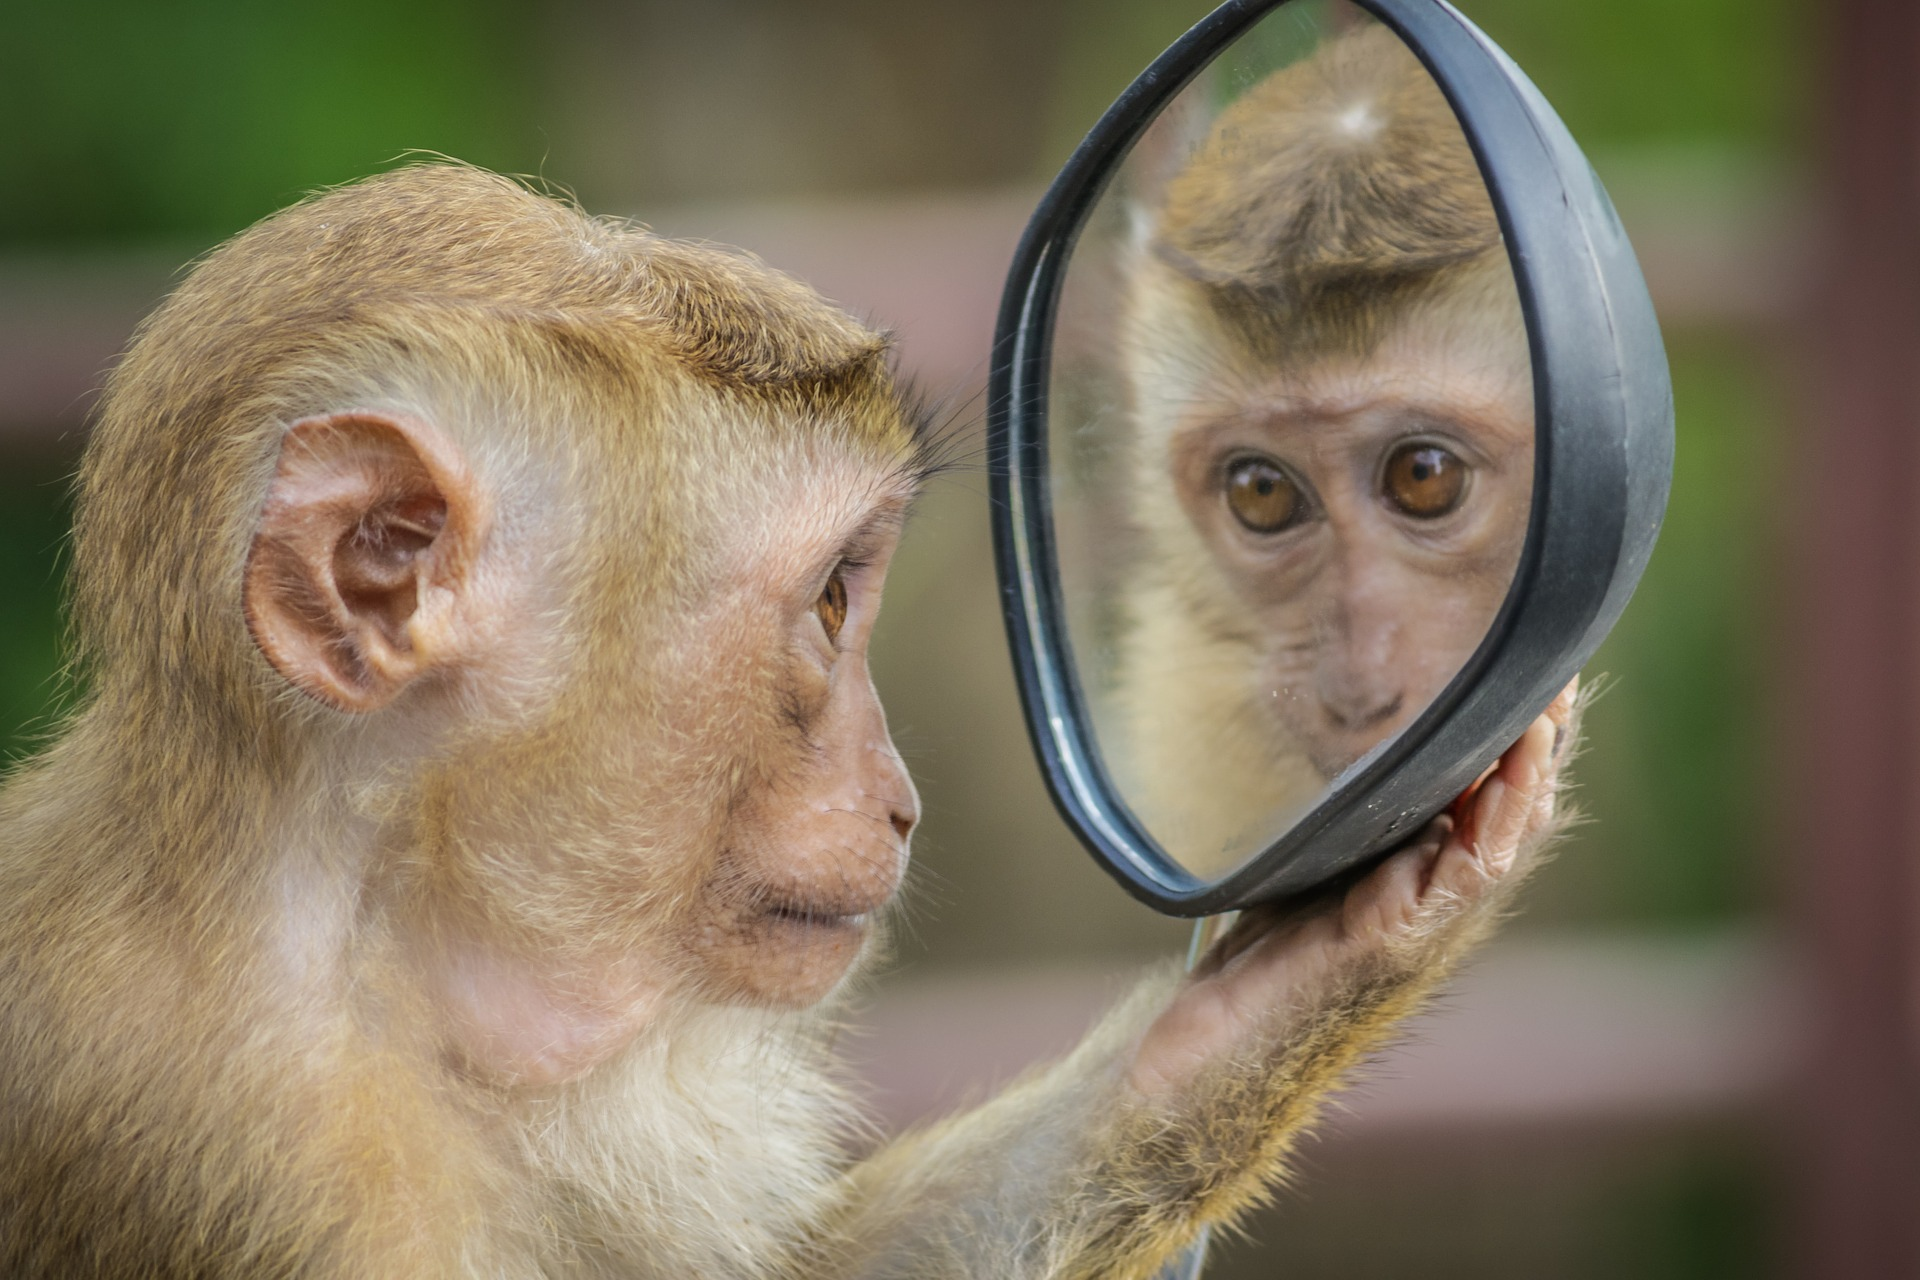 Can Evolution Be Conscious of Itself? Yes, It Can!